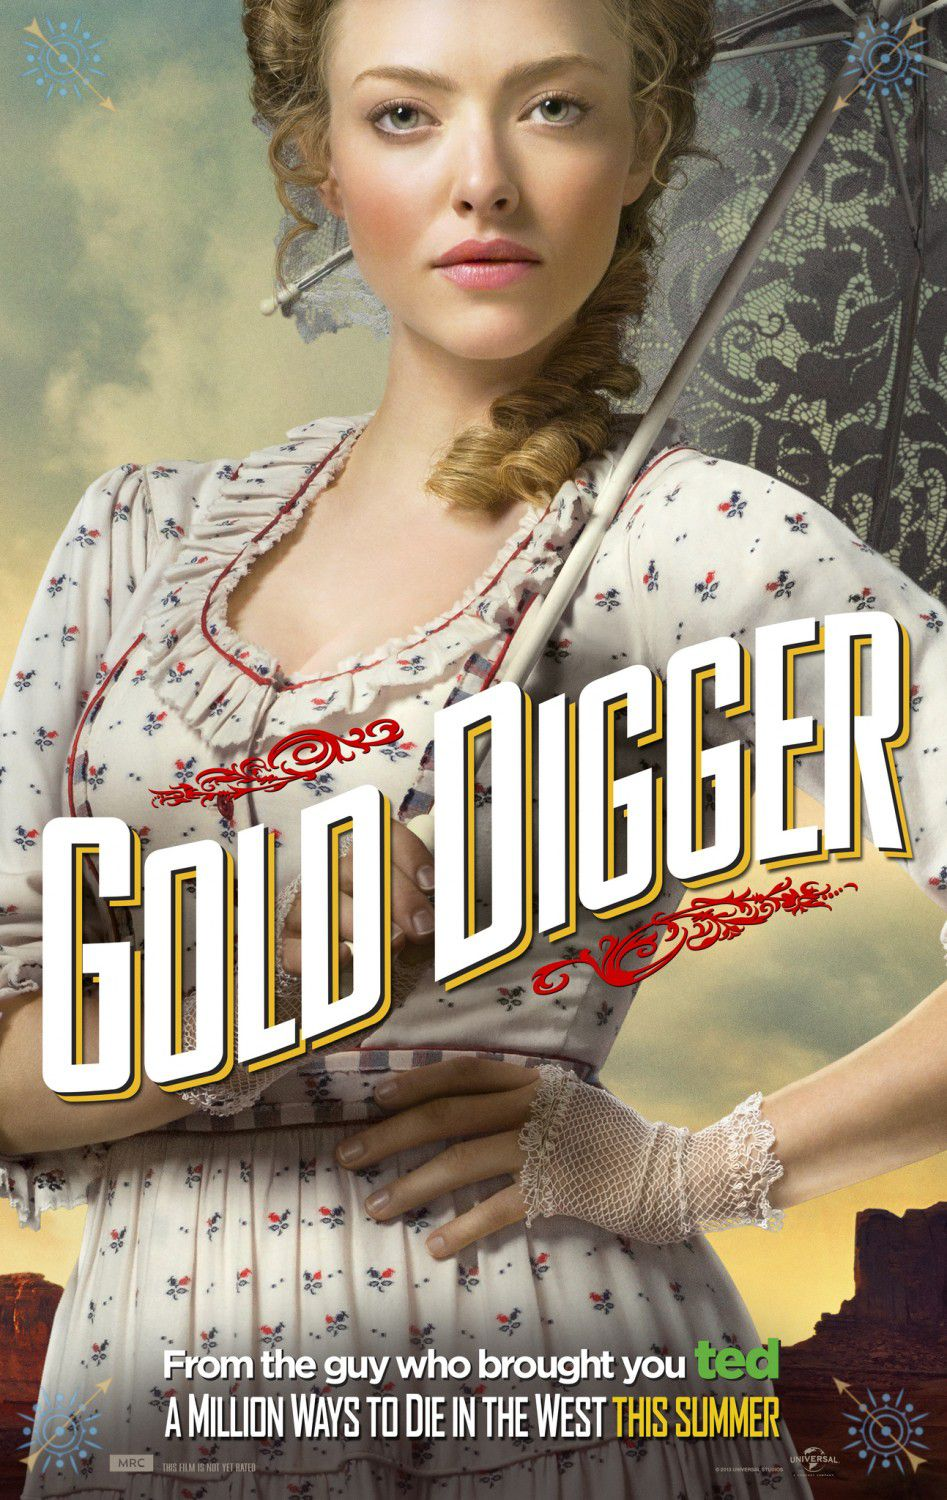 Million ways to Die in the West - Un milione di modi per morire nel West - Gold Digger - Amanda Seyfried